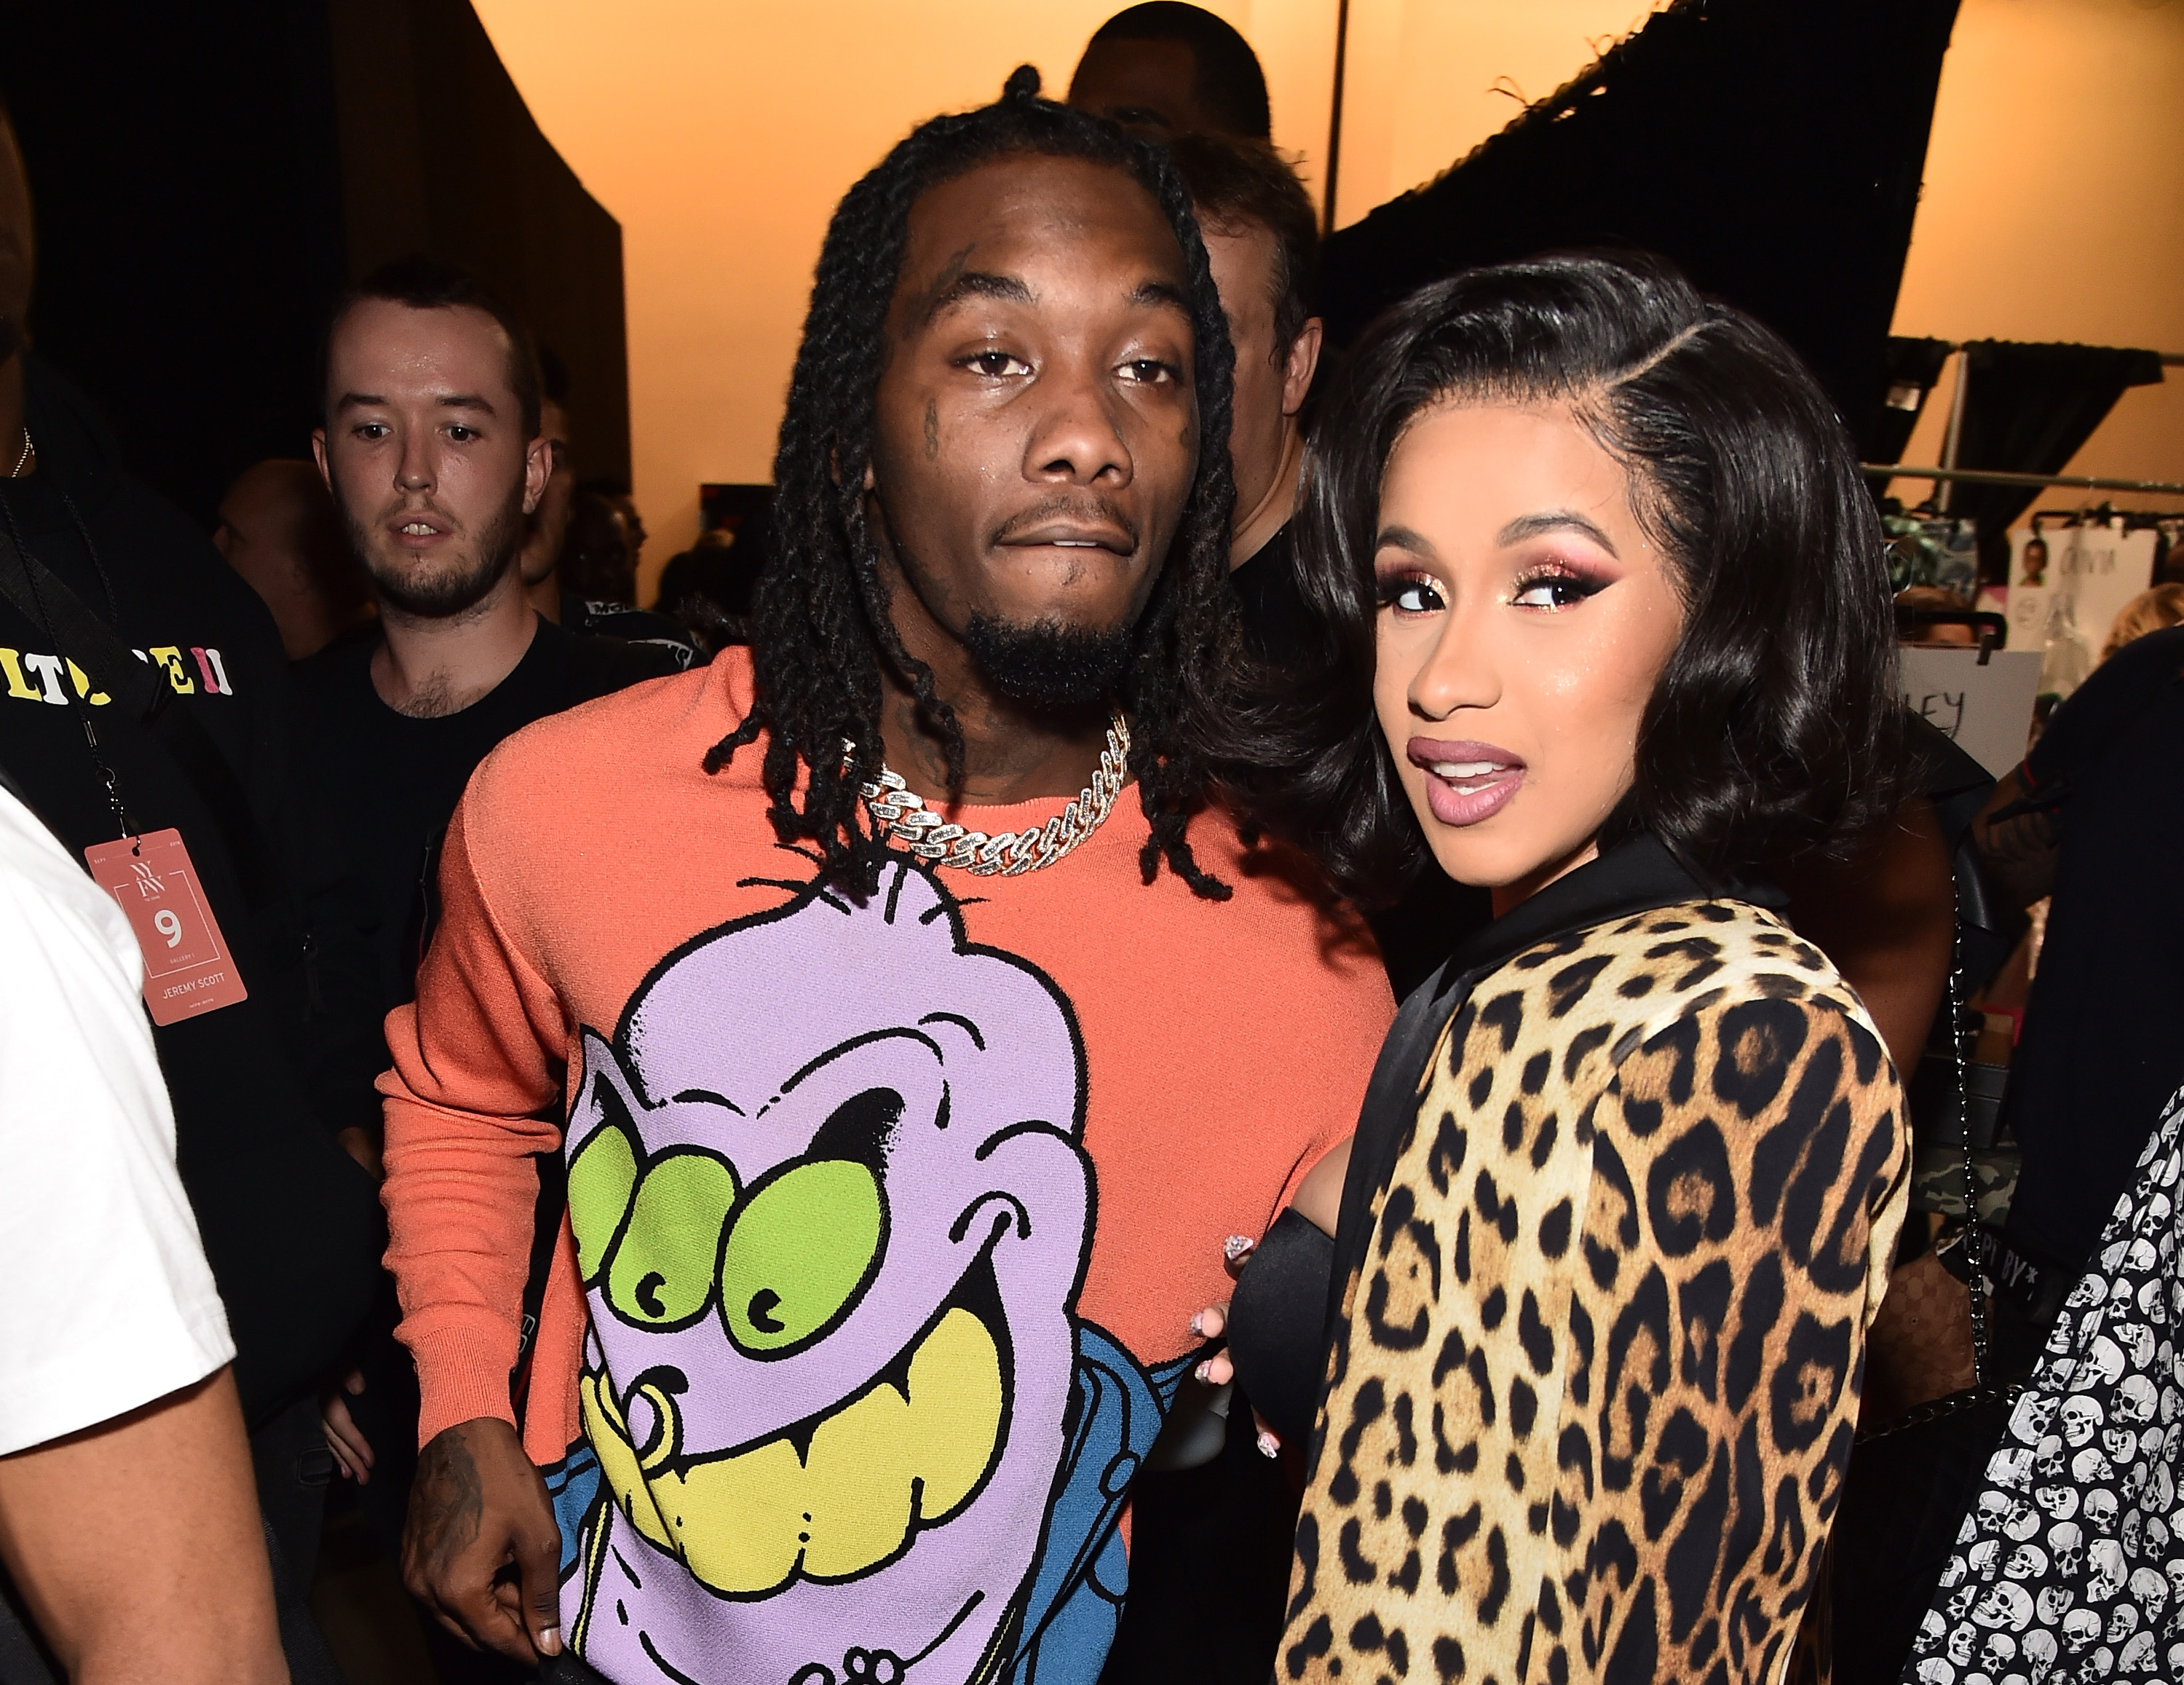 Offset and Cardi B pose backstage at the Jeremy Scott show during New York Fashion Week on September 6, 2018, in New York City. (Getty Images)